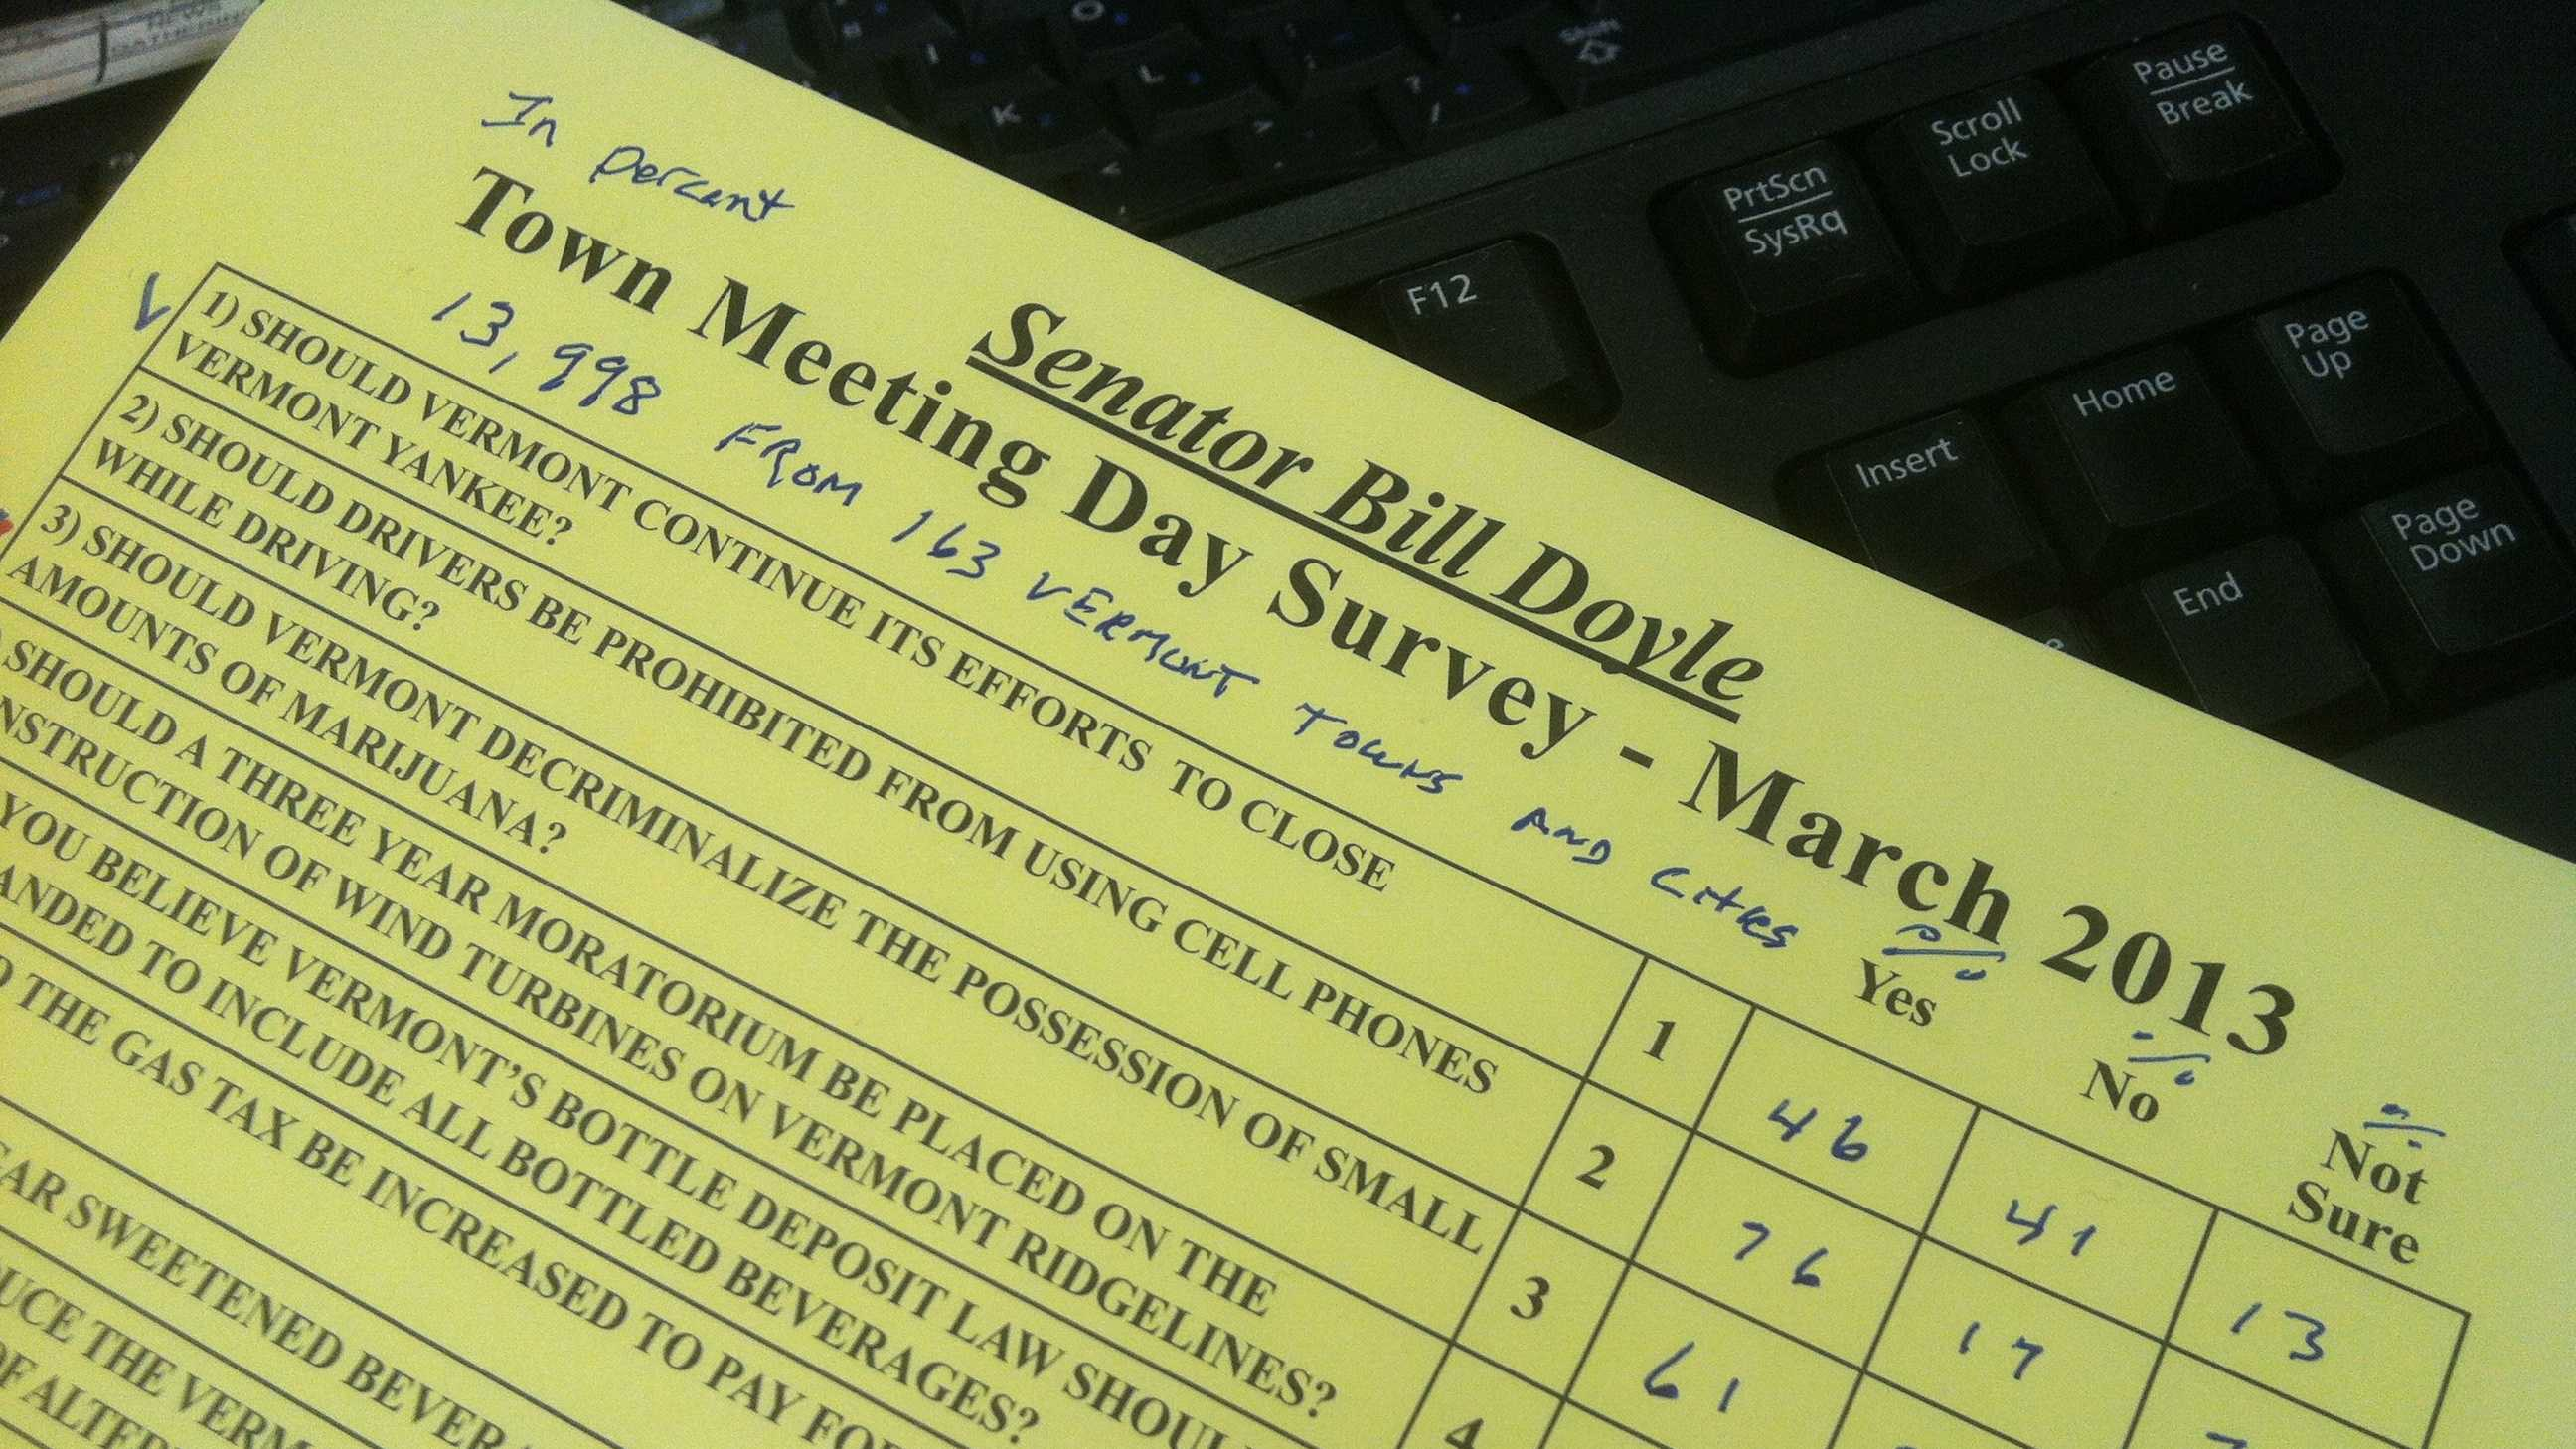 04-01-13 Vermonters oppose gas tax hike, survey finds - img